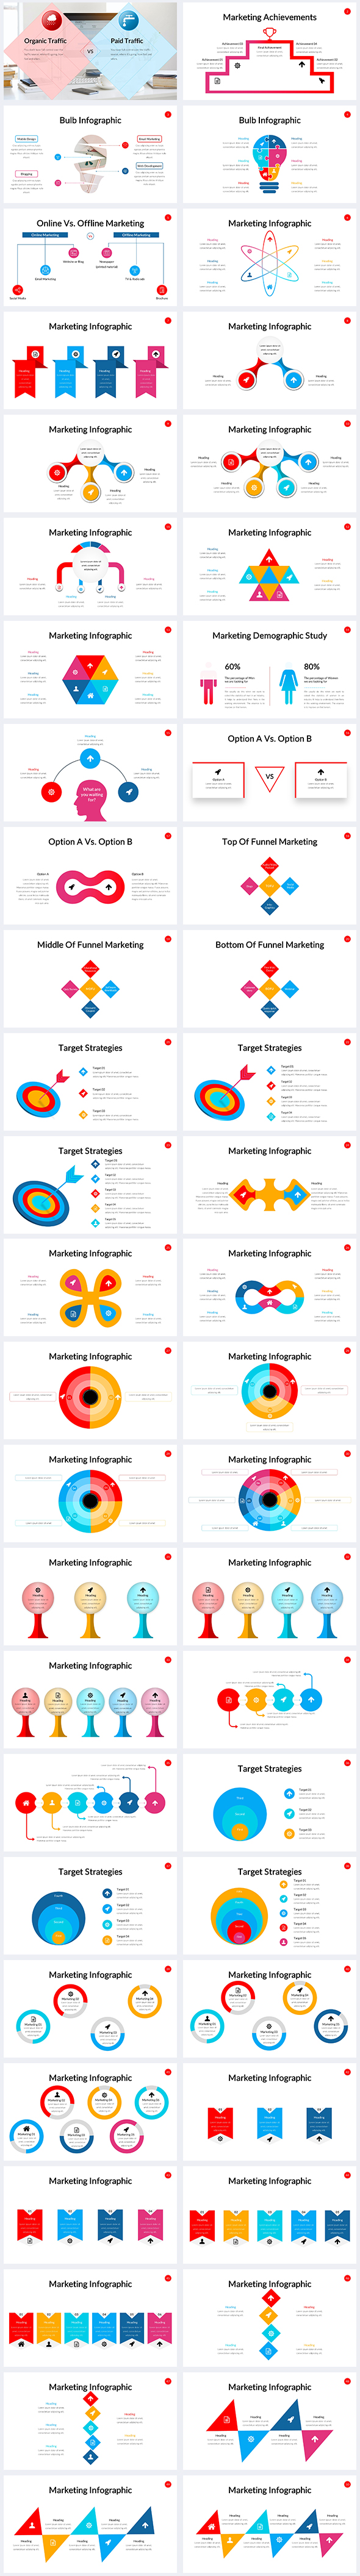 Marketing-Infographic-Power-Point-Template